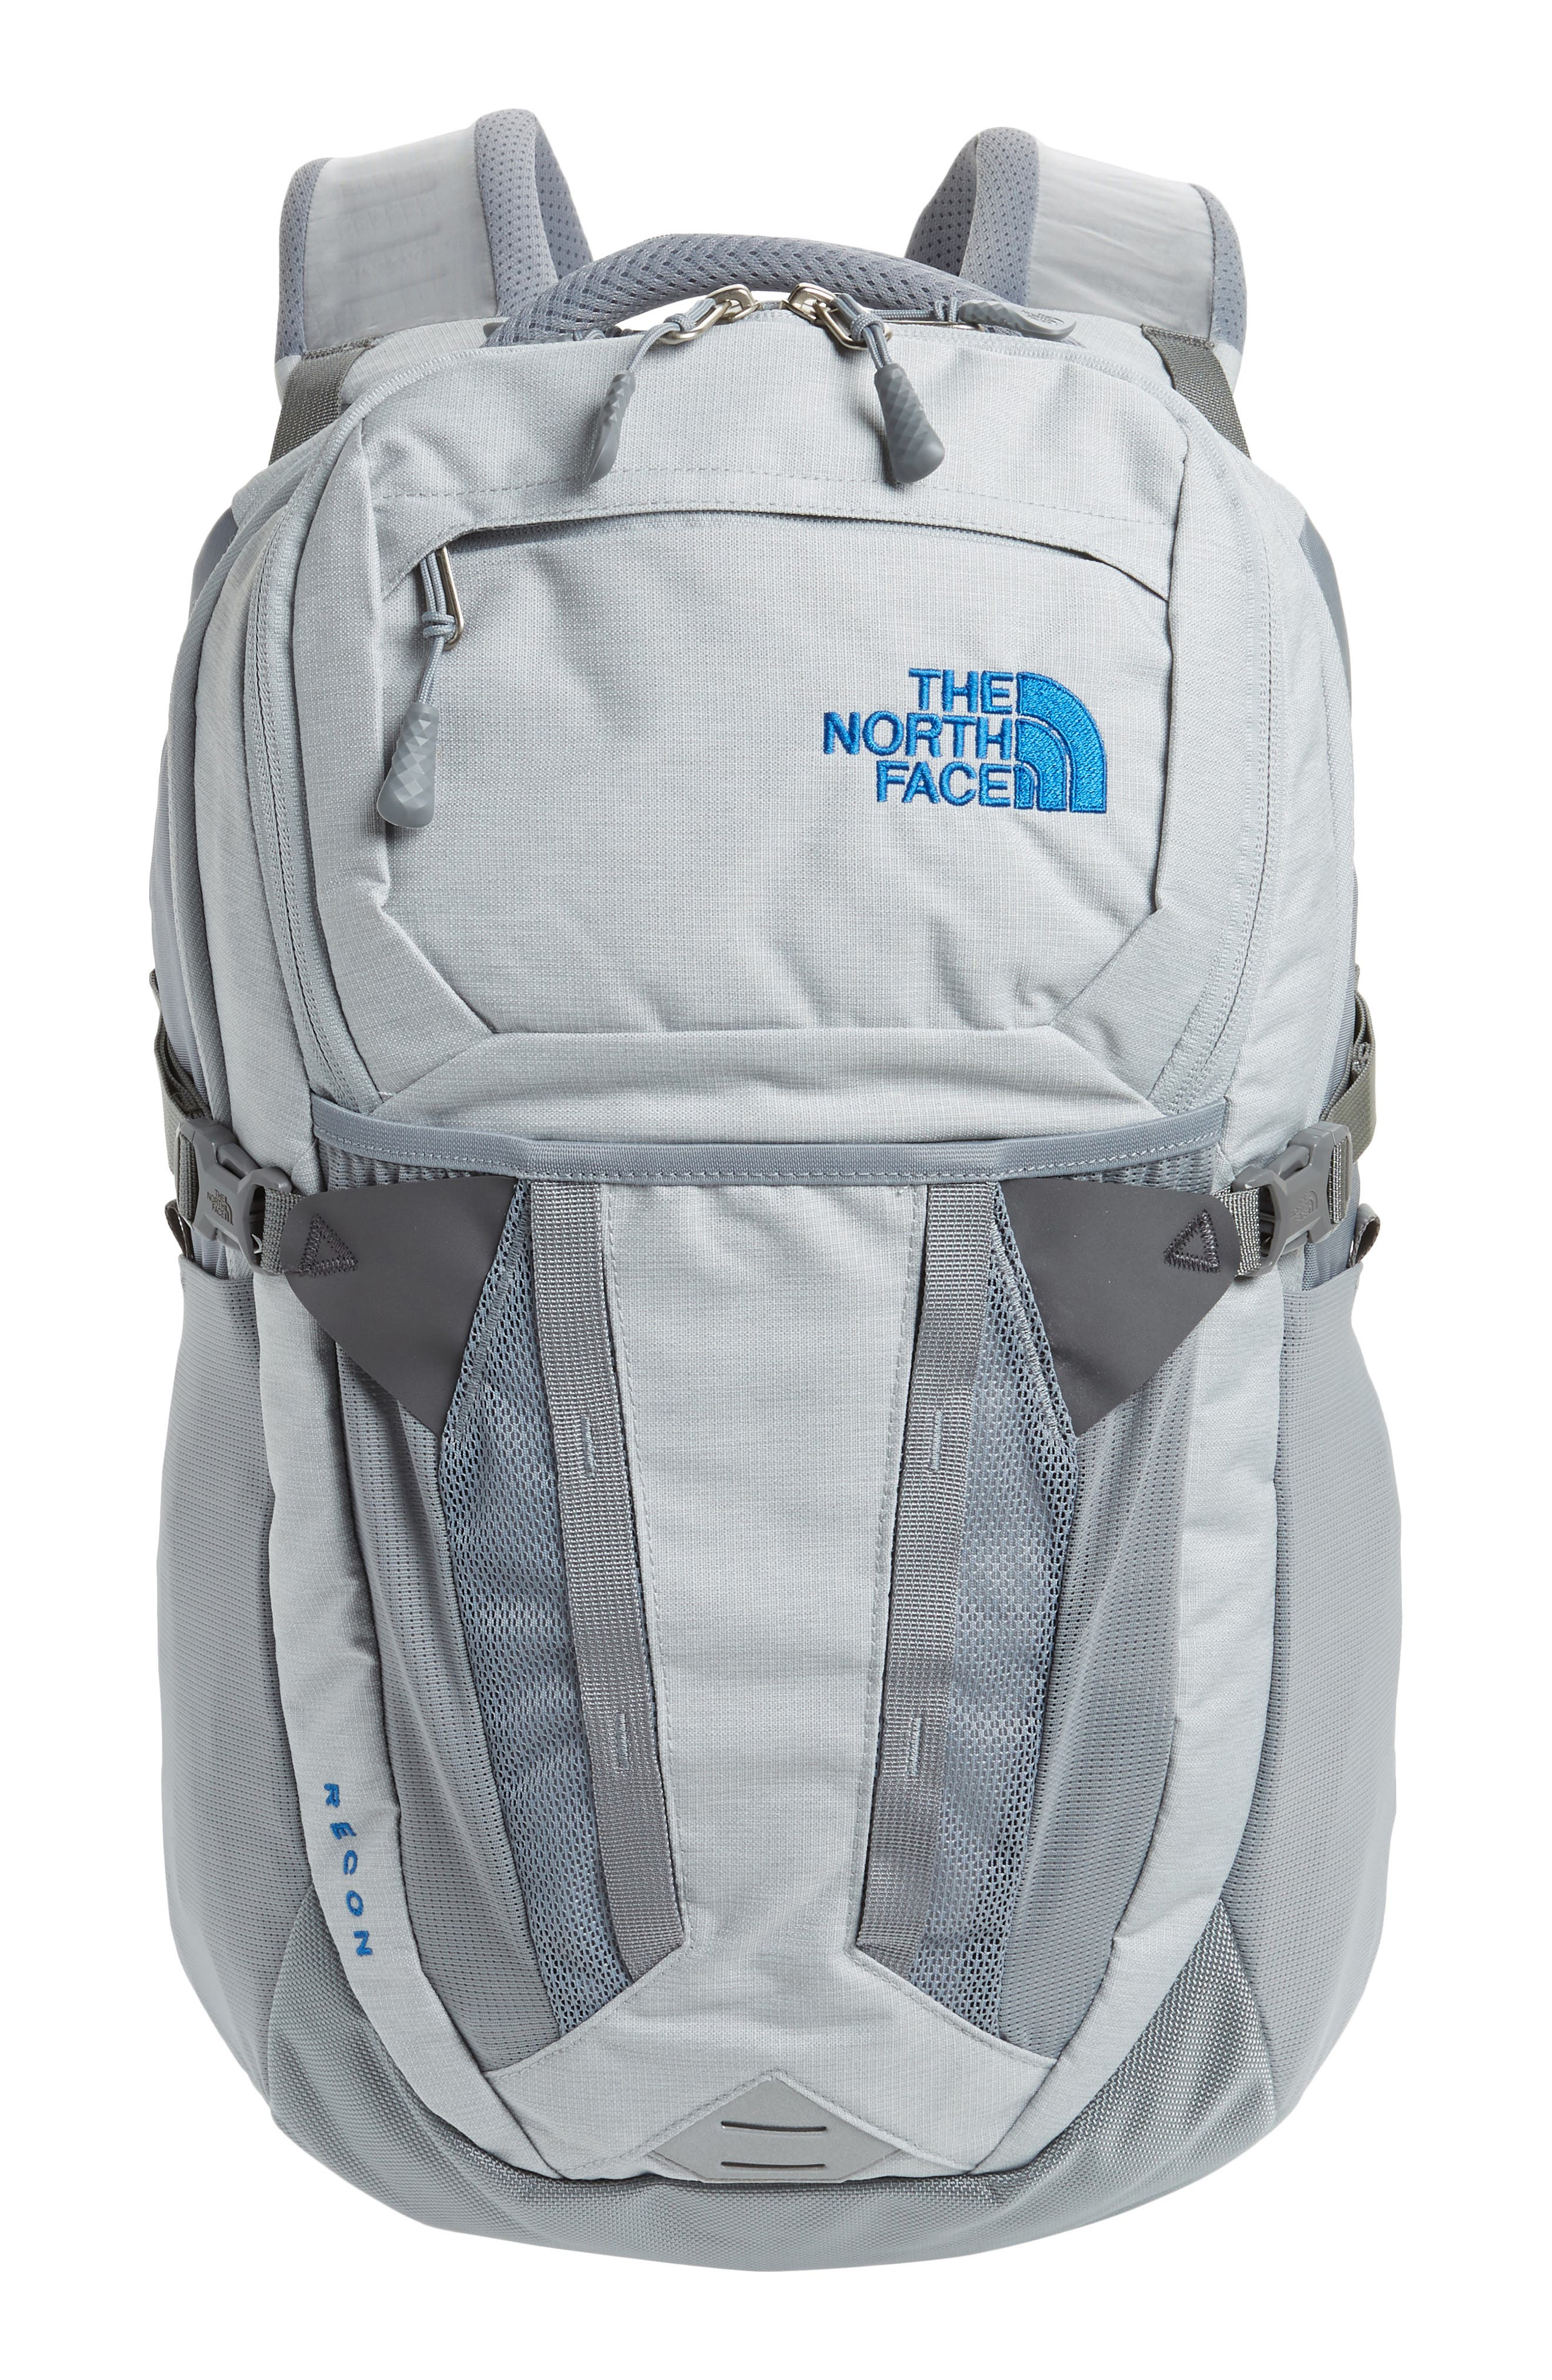 Recon Backpack,                             Main thumbnail 1, color,                             HIGH RISE GREY HEATHER/ GREY